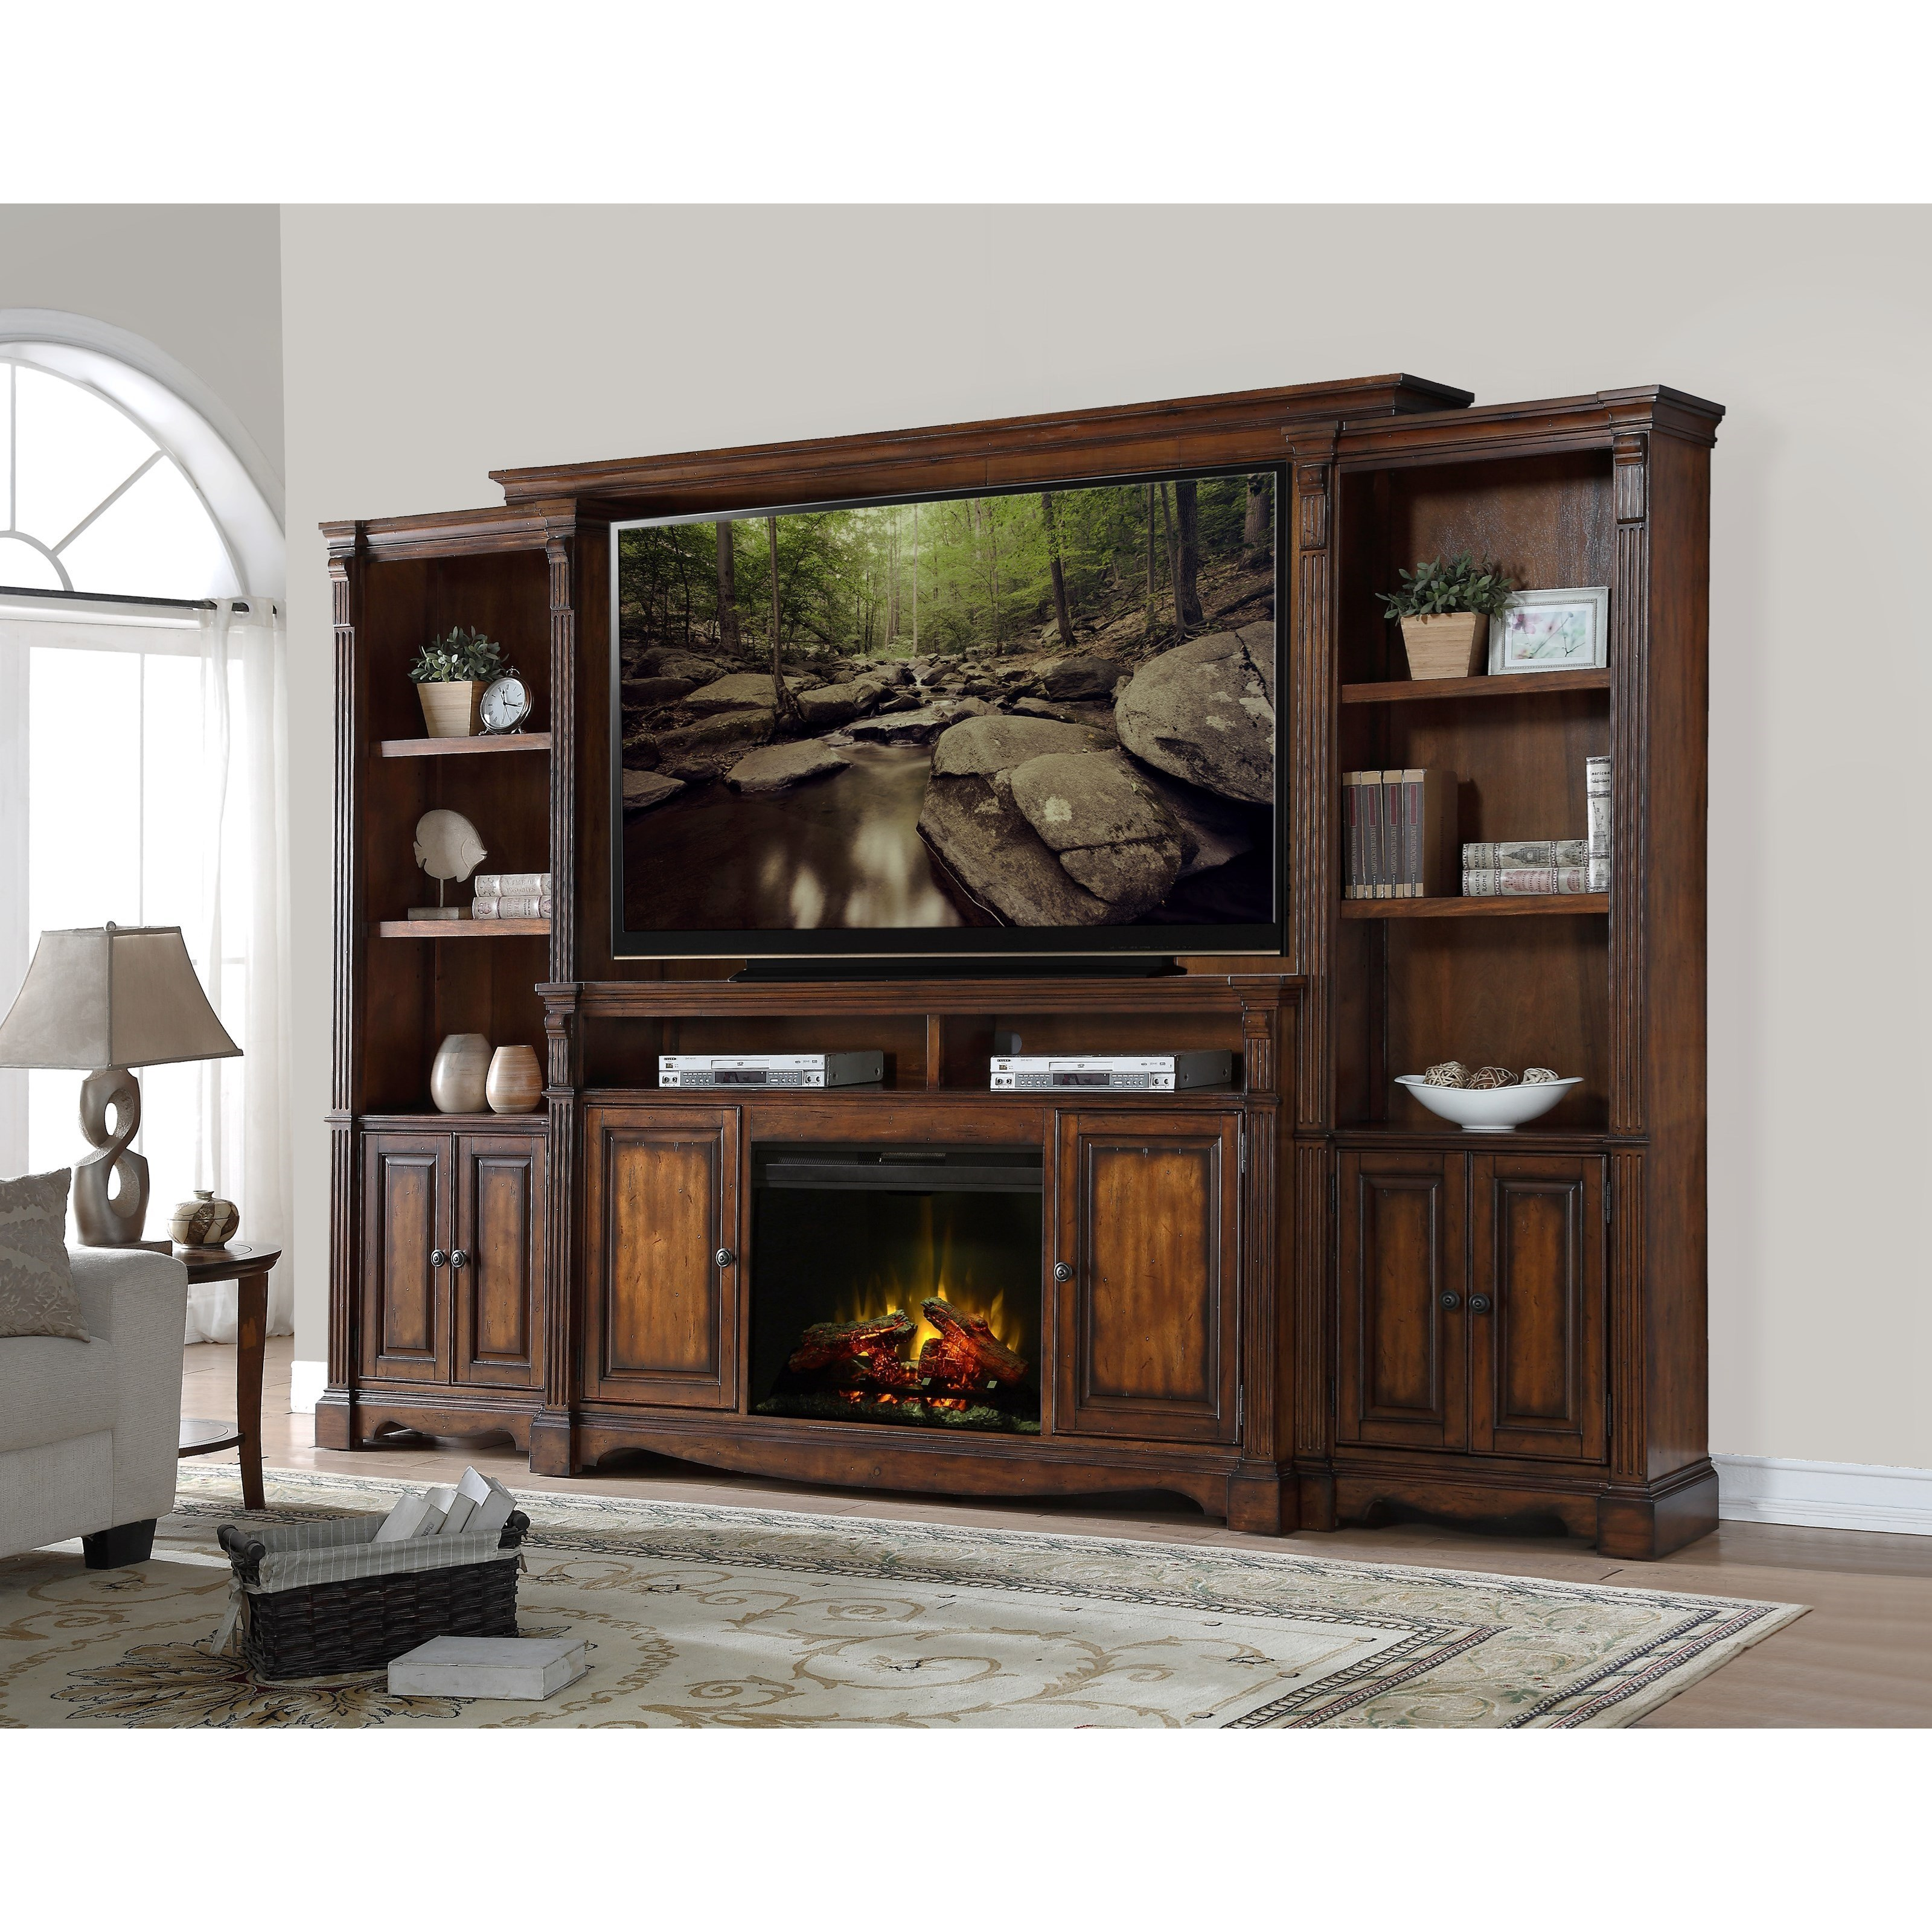 home entertainment fireplace living room furniture decorating ideas for with dark gray walls legends parliament zpar 1001 traditional parliamentparliament wall